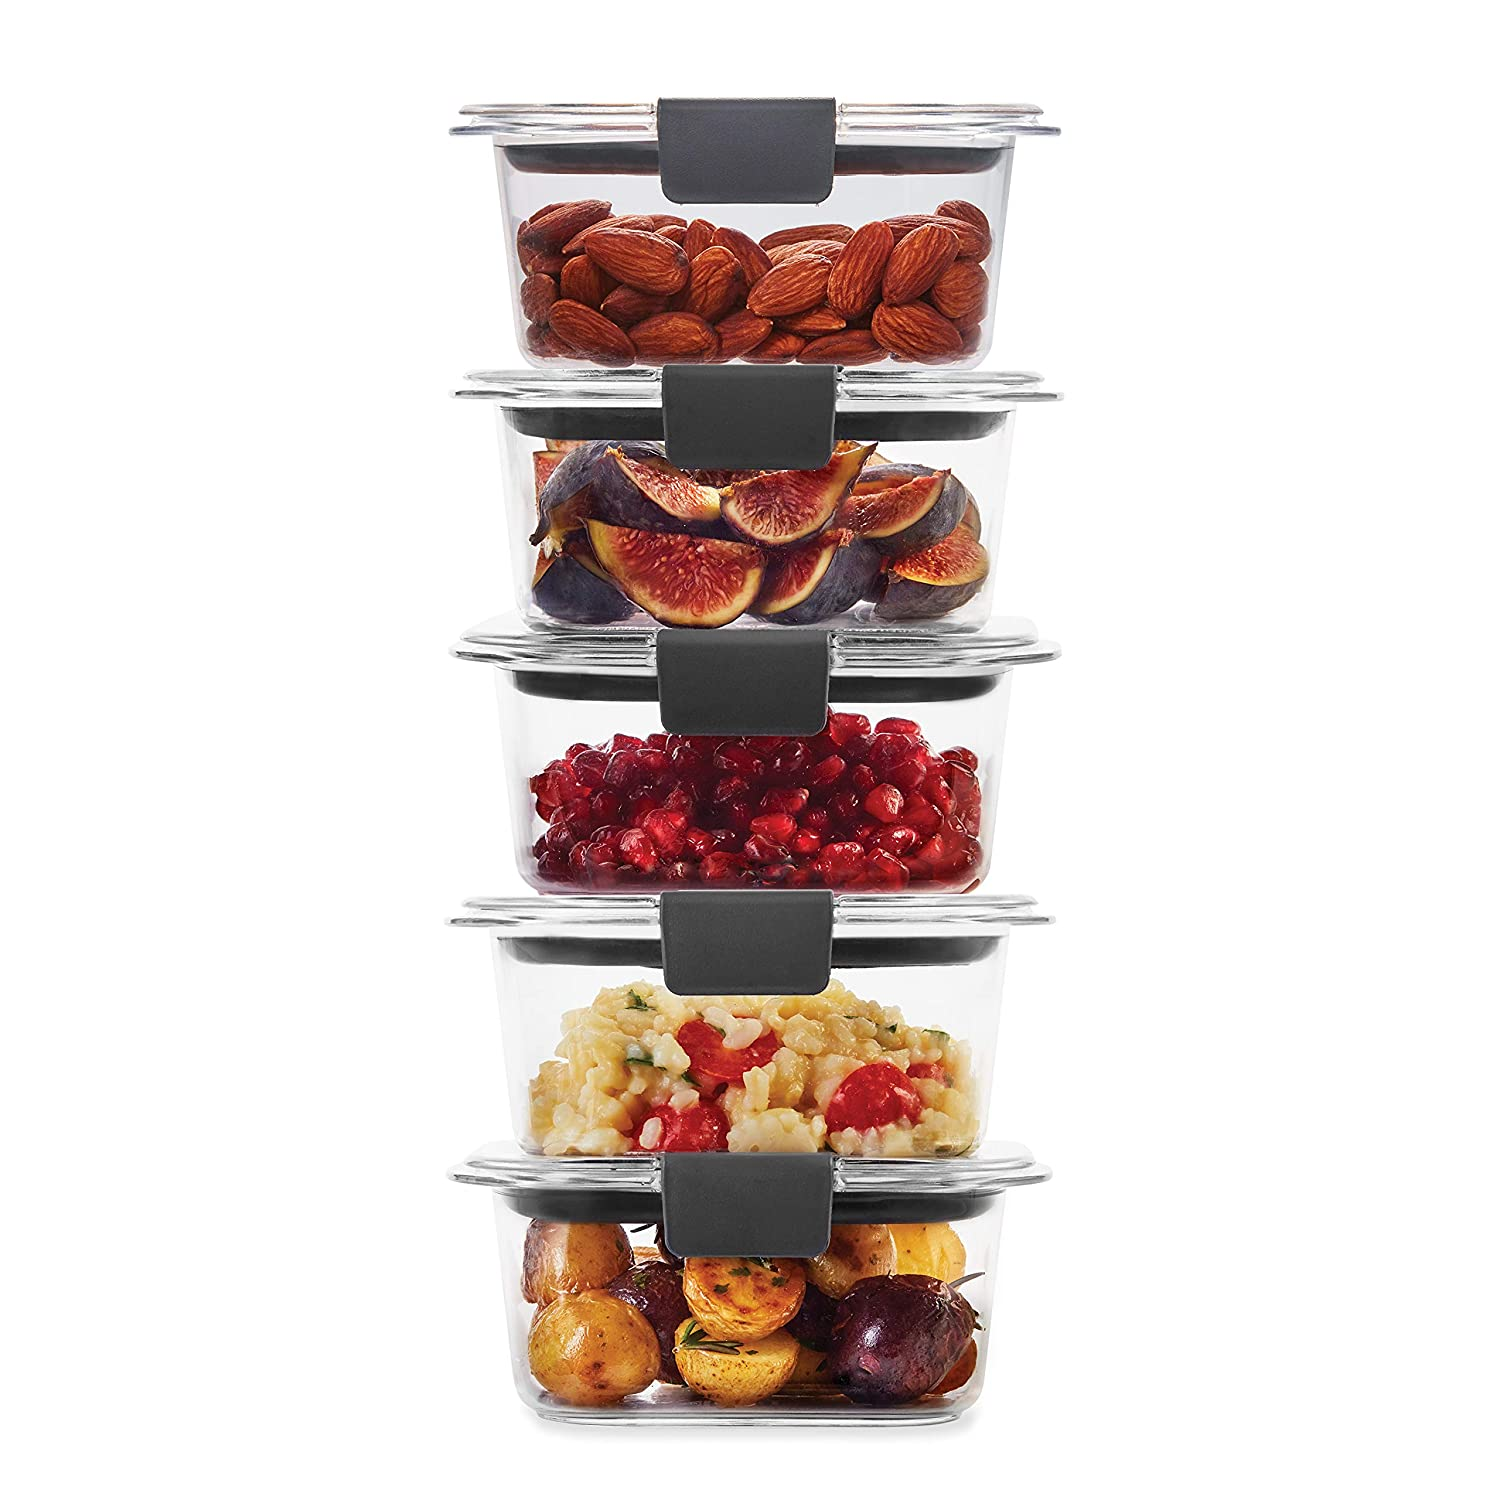 Rubbermaid 2108398 Leak-Proof Brilliance Food Storage Set | 1.3 Cup Plastic Containers with Lids | Microwave and Dishwasher Safe, 5-Pack, Clear